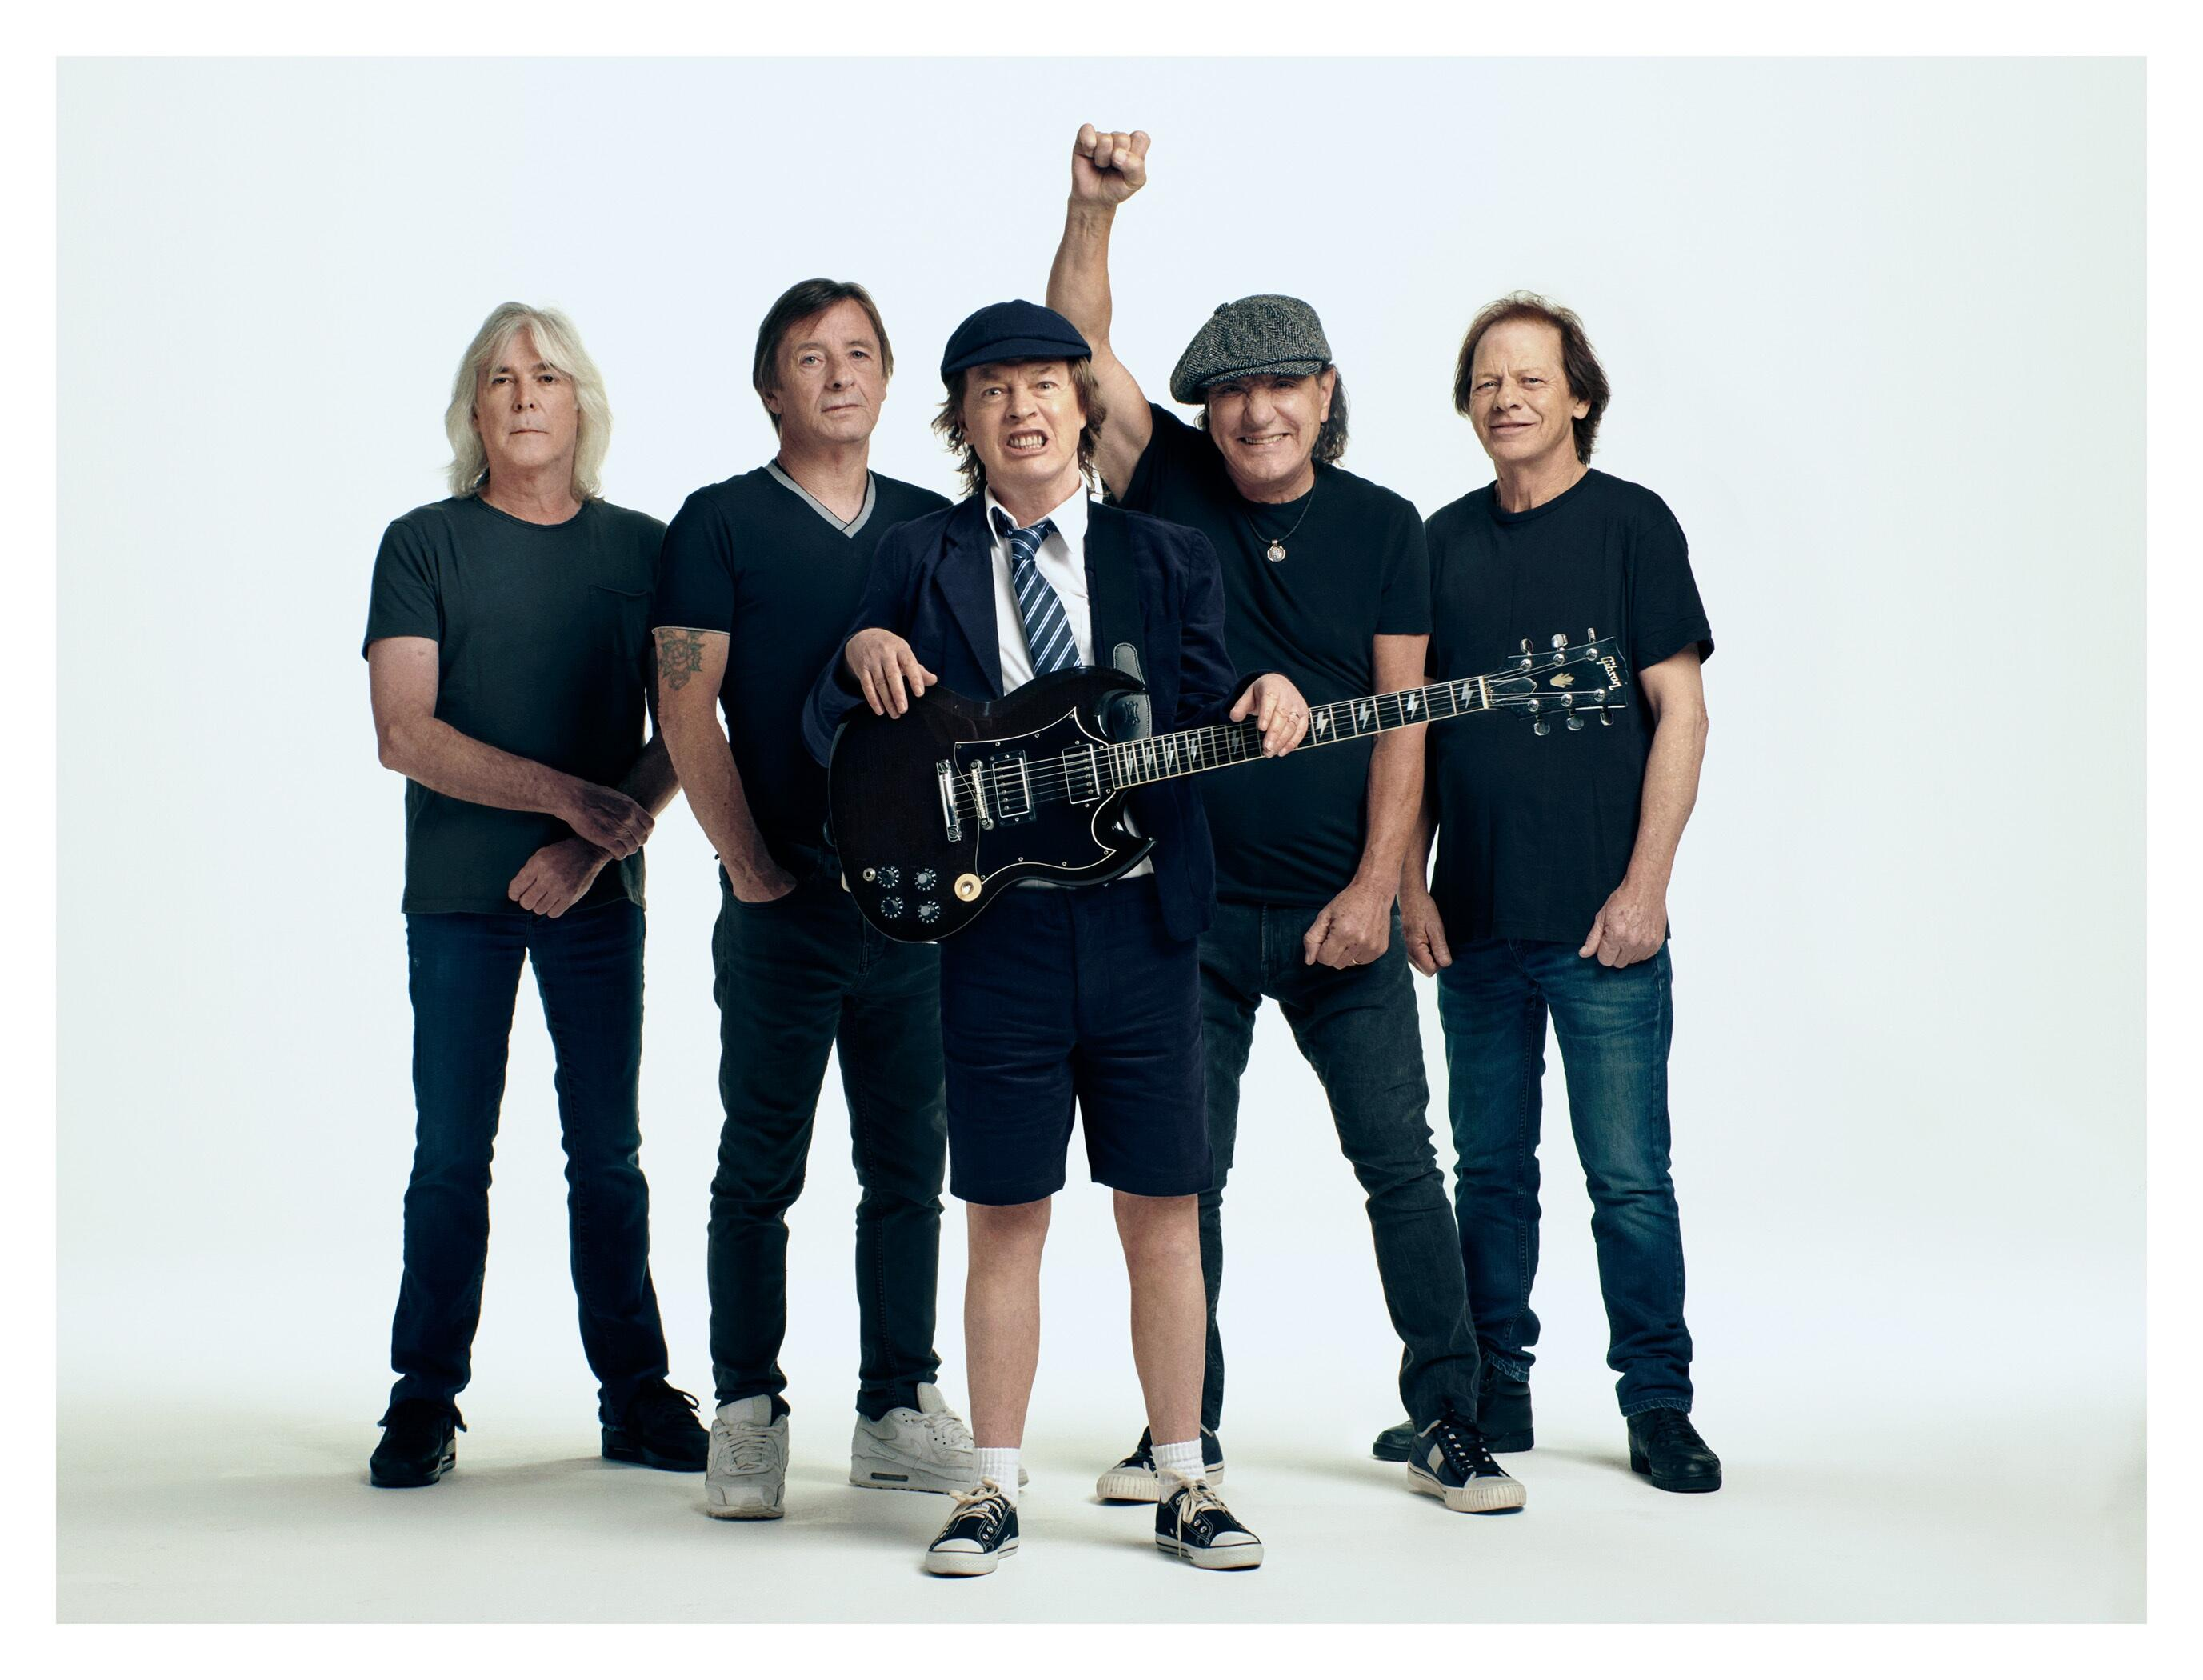 the band history of acdc Ac/dc comes from a label one of the band members saw on a sewing machine  when he looked it up, it turned out to have meant alternating current / direct.